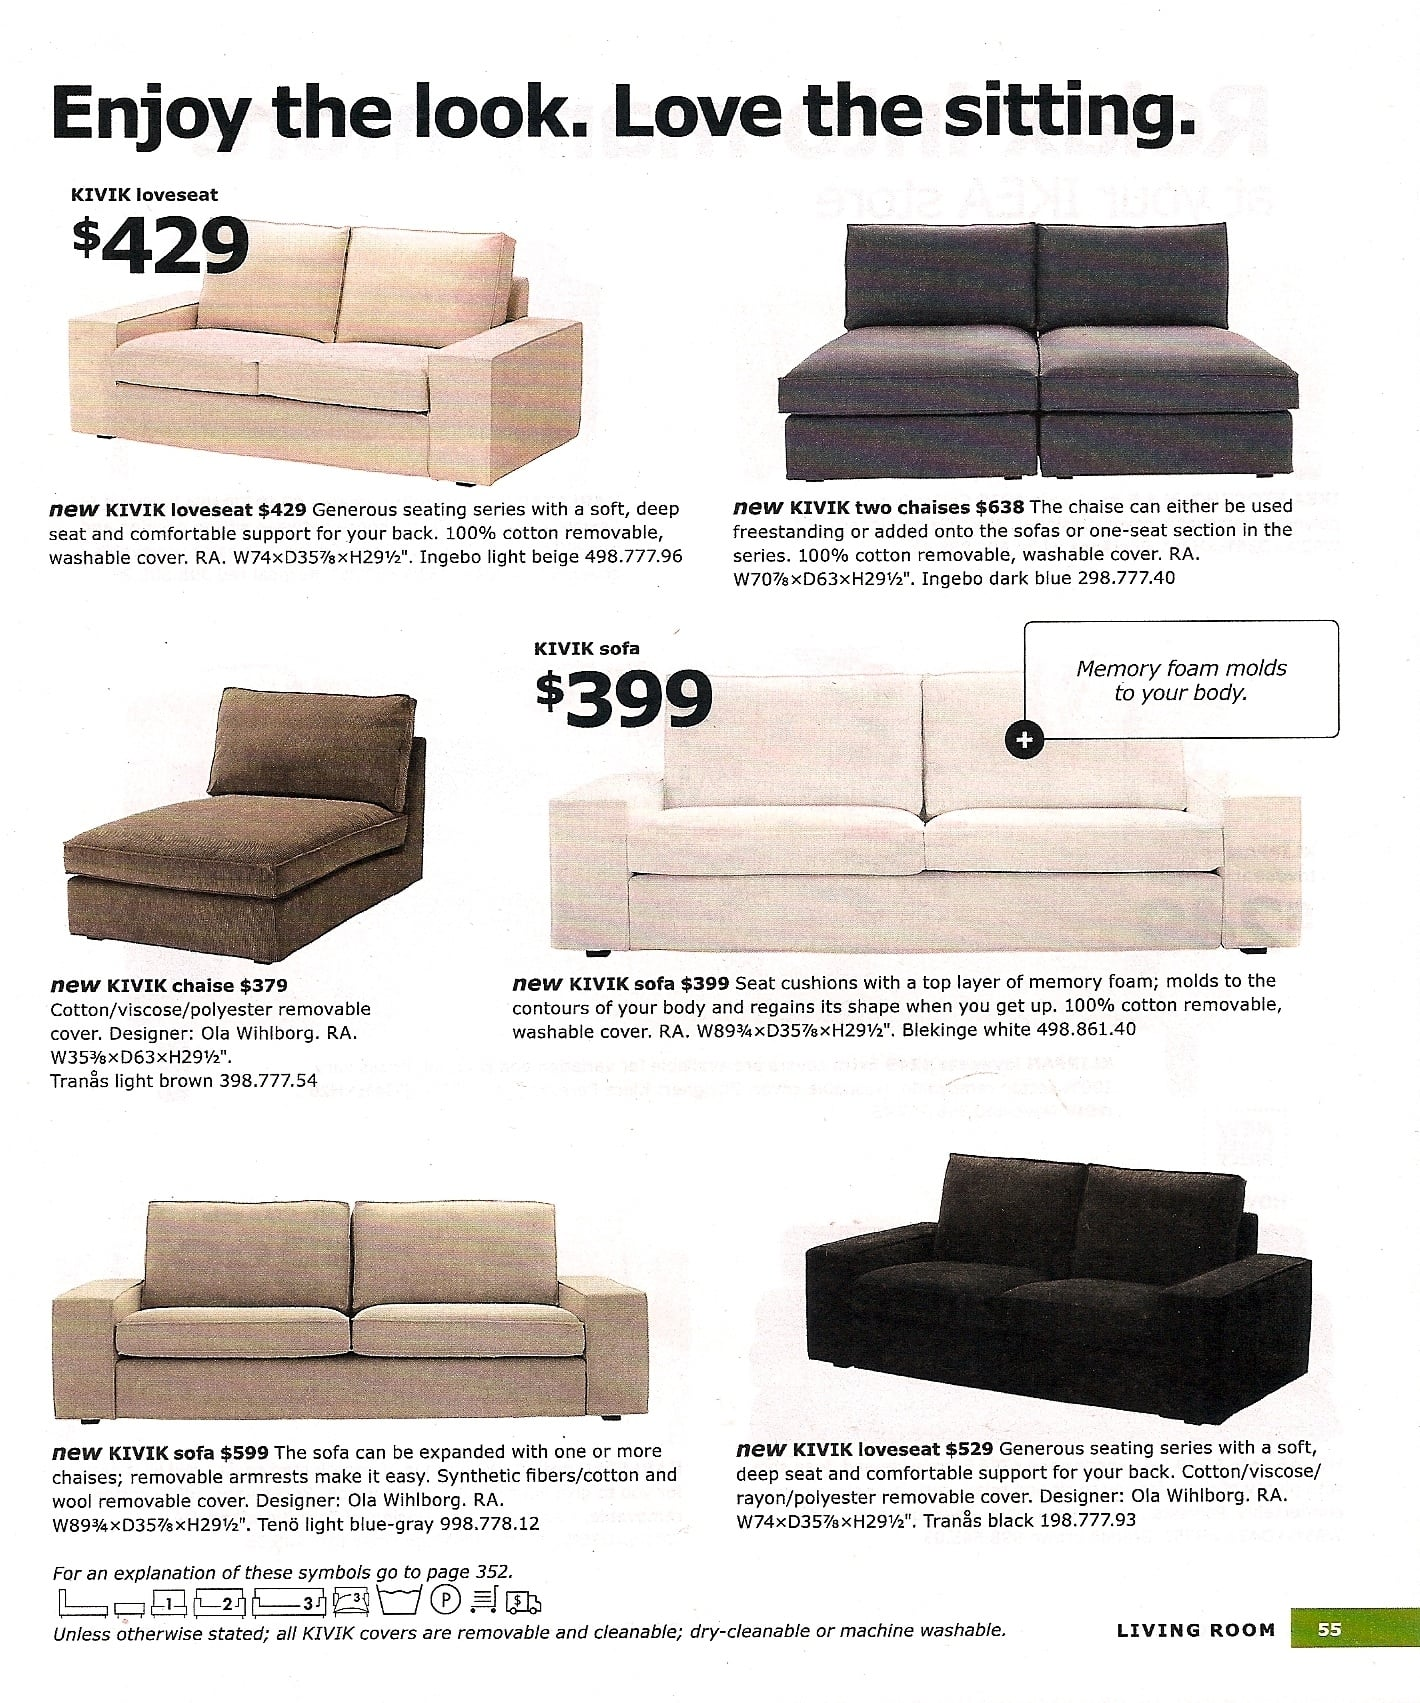 The new KIVIK line includes a love seat, chaise, and sofa. The seat cushions are made of a top layer of memory foam, which molds to the contours of your body and regains its shape when you get up.